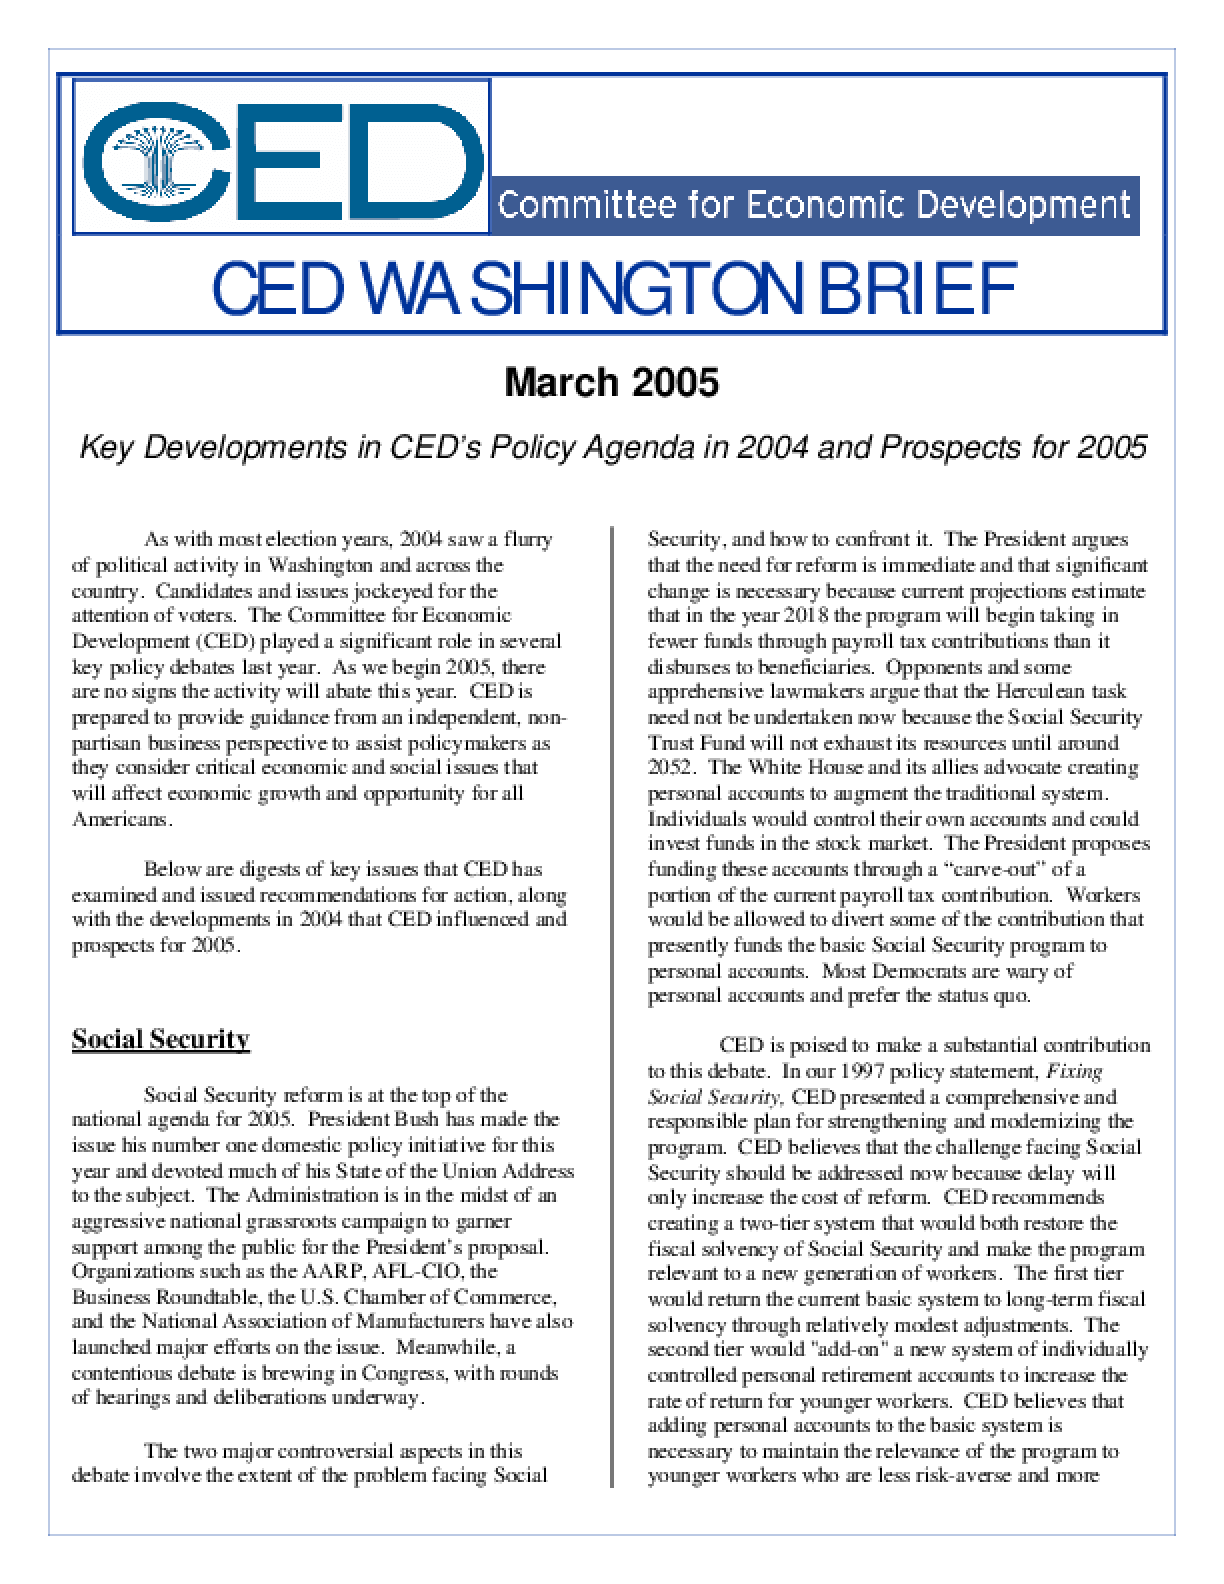 CED Washington Brief: Key Developments in CED's Policy Agenda in 2004 and Prospects for 2005